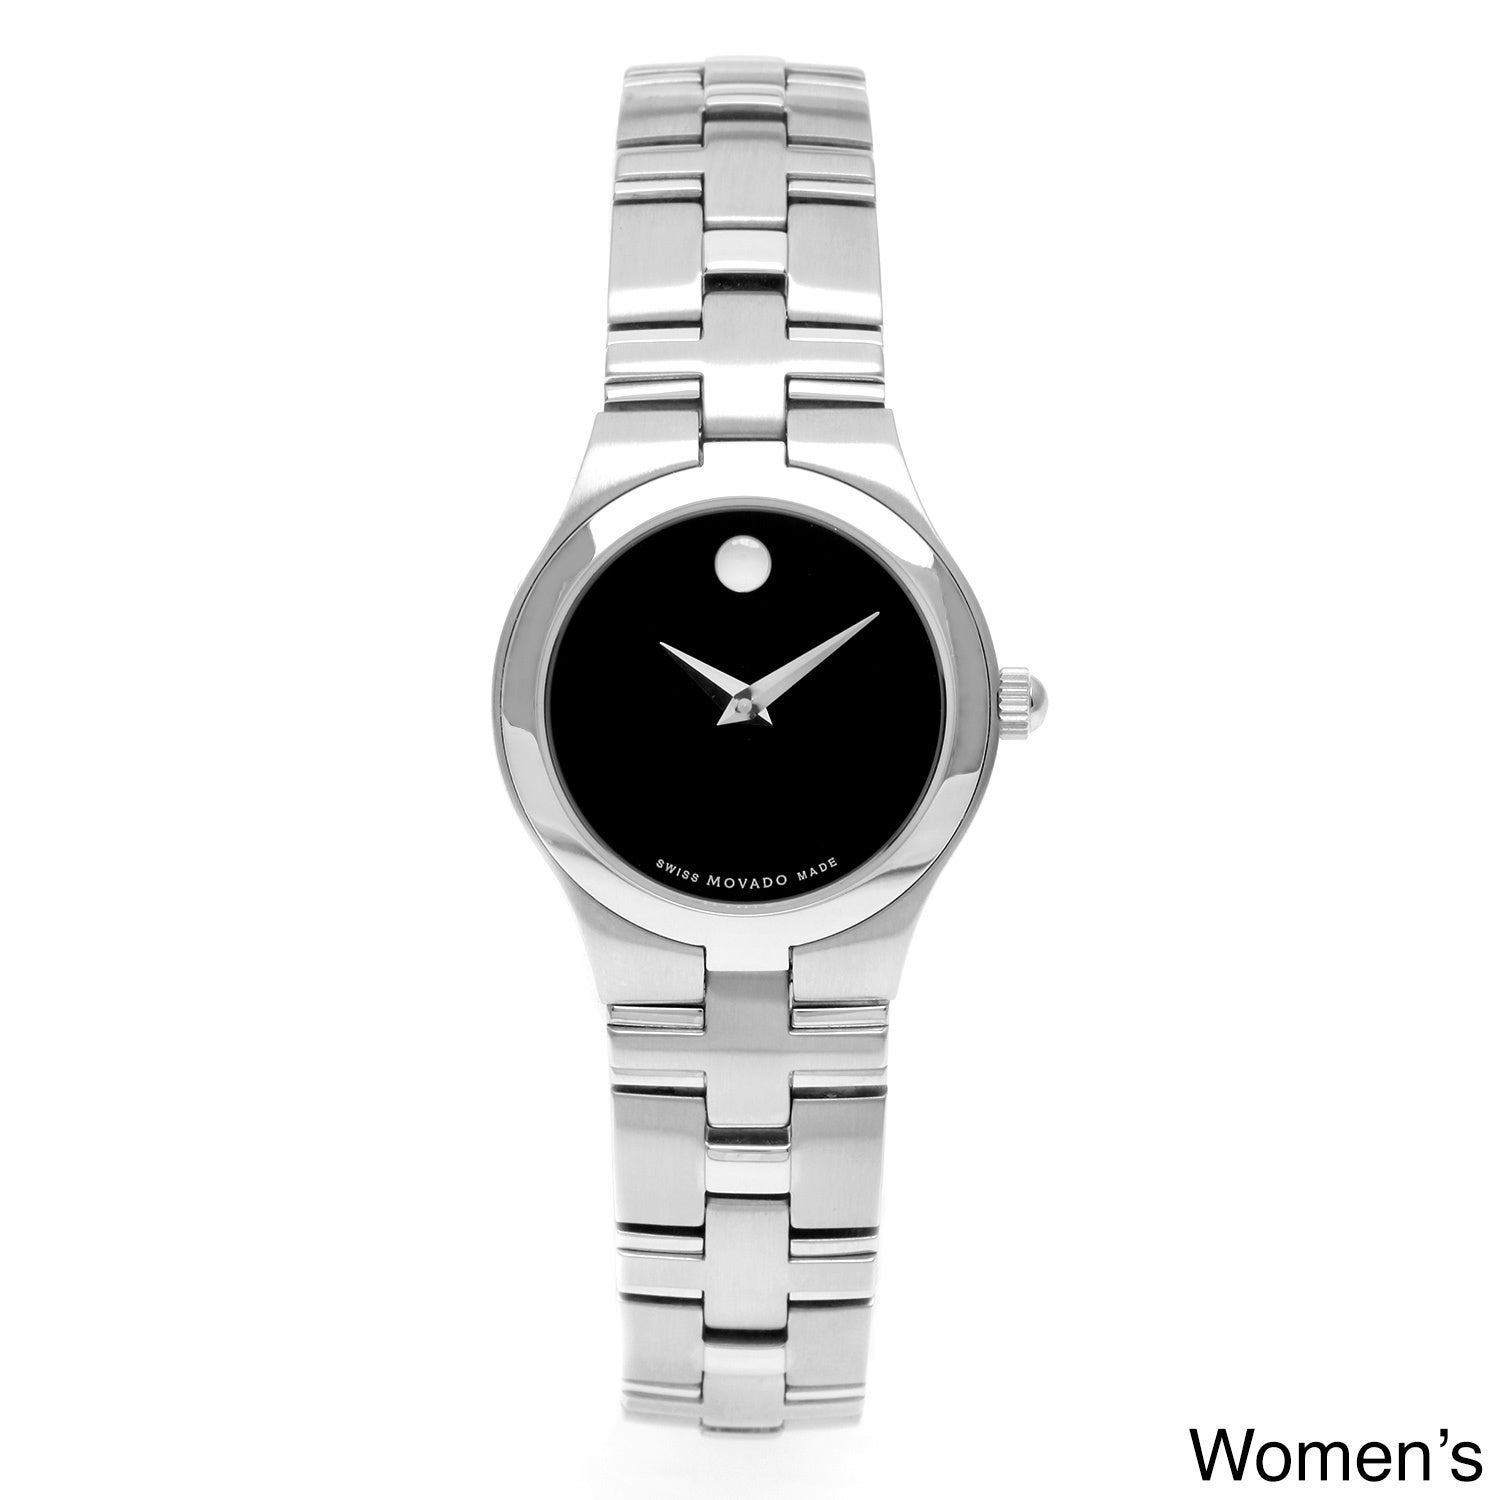 Movado Juro Mens 0605023 Or Womens 0605024 Stainless Steel Watch